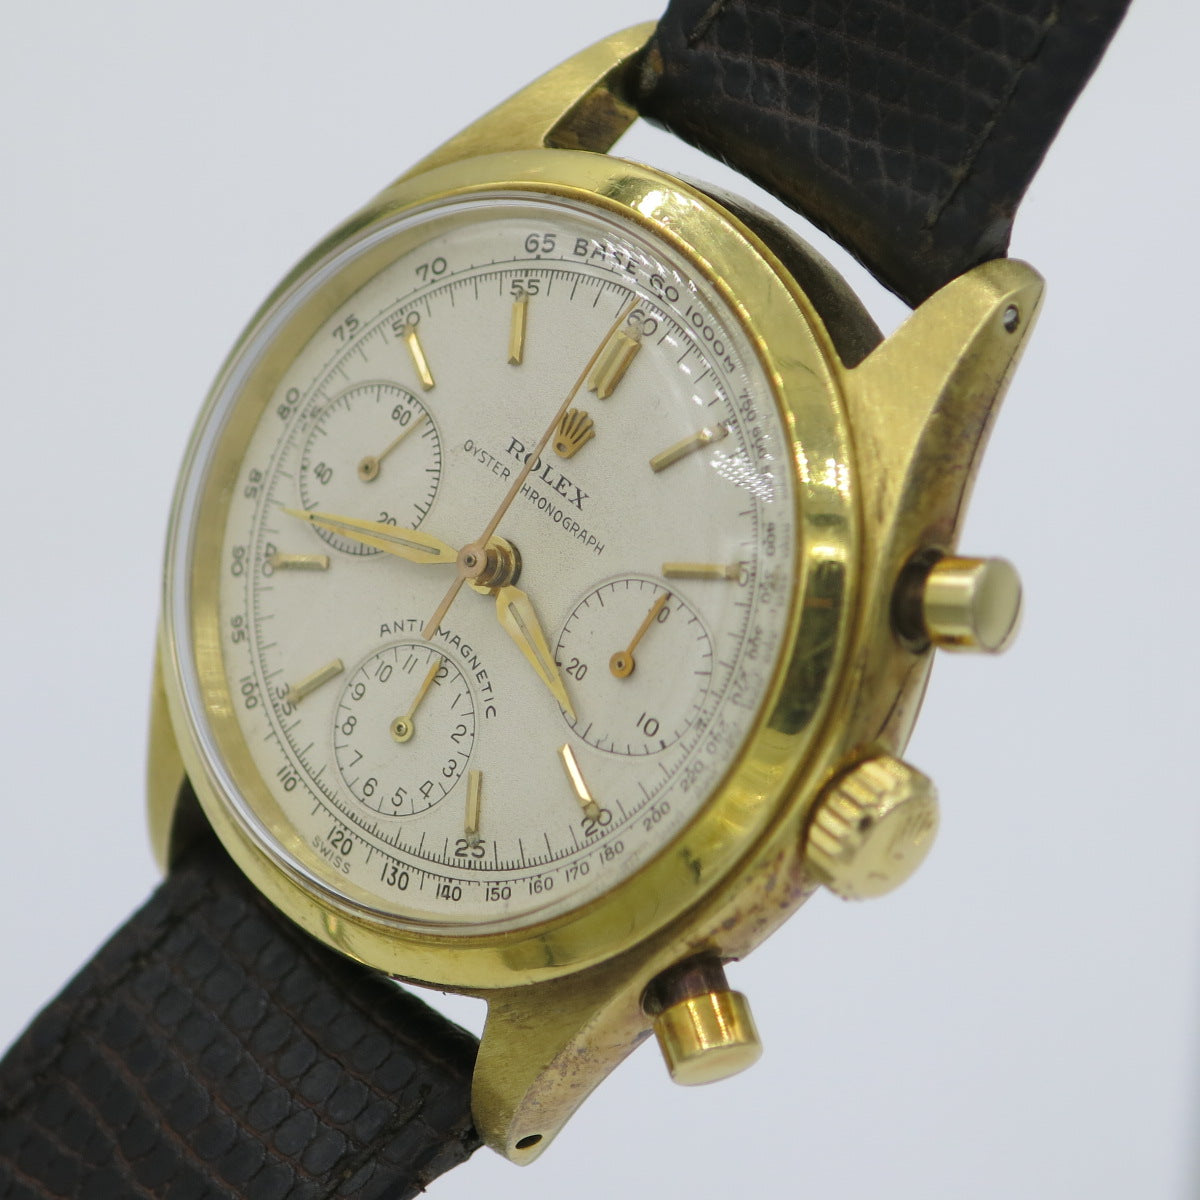 Wrist Chronicles - The Spring of 1965